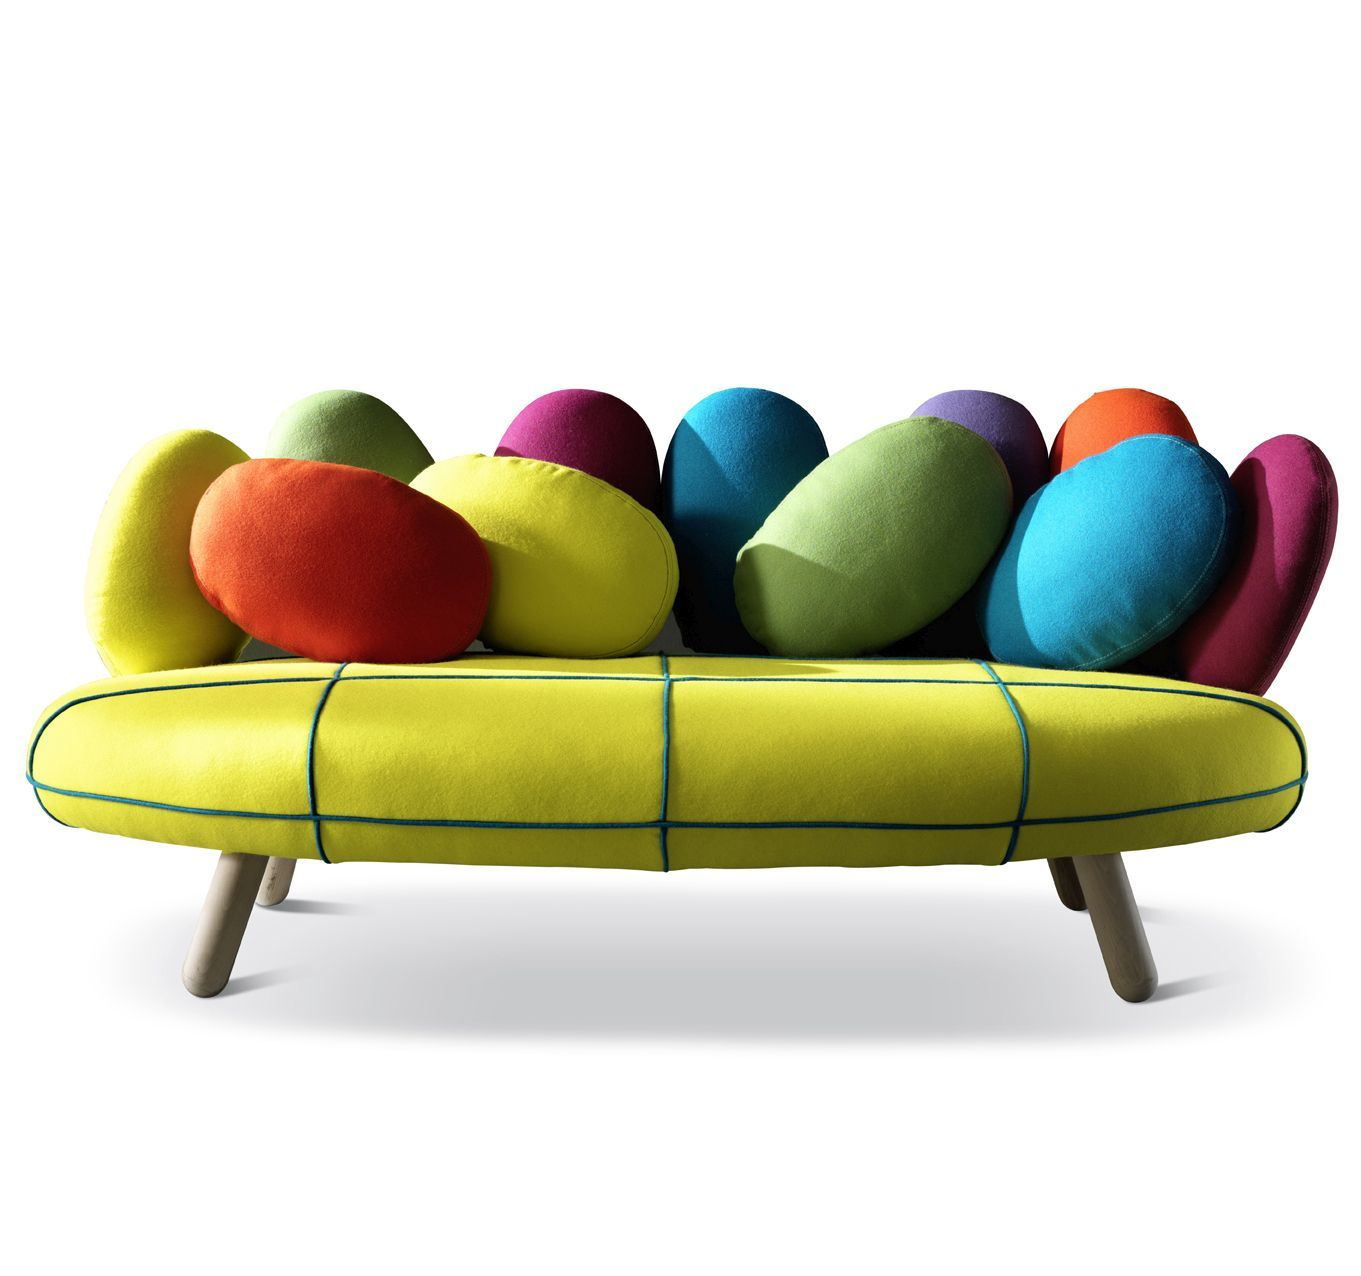 Loving This Fun And Colourful 1970s Style Sofa From The Italian Furniture  Company Adrenalina. Over